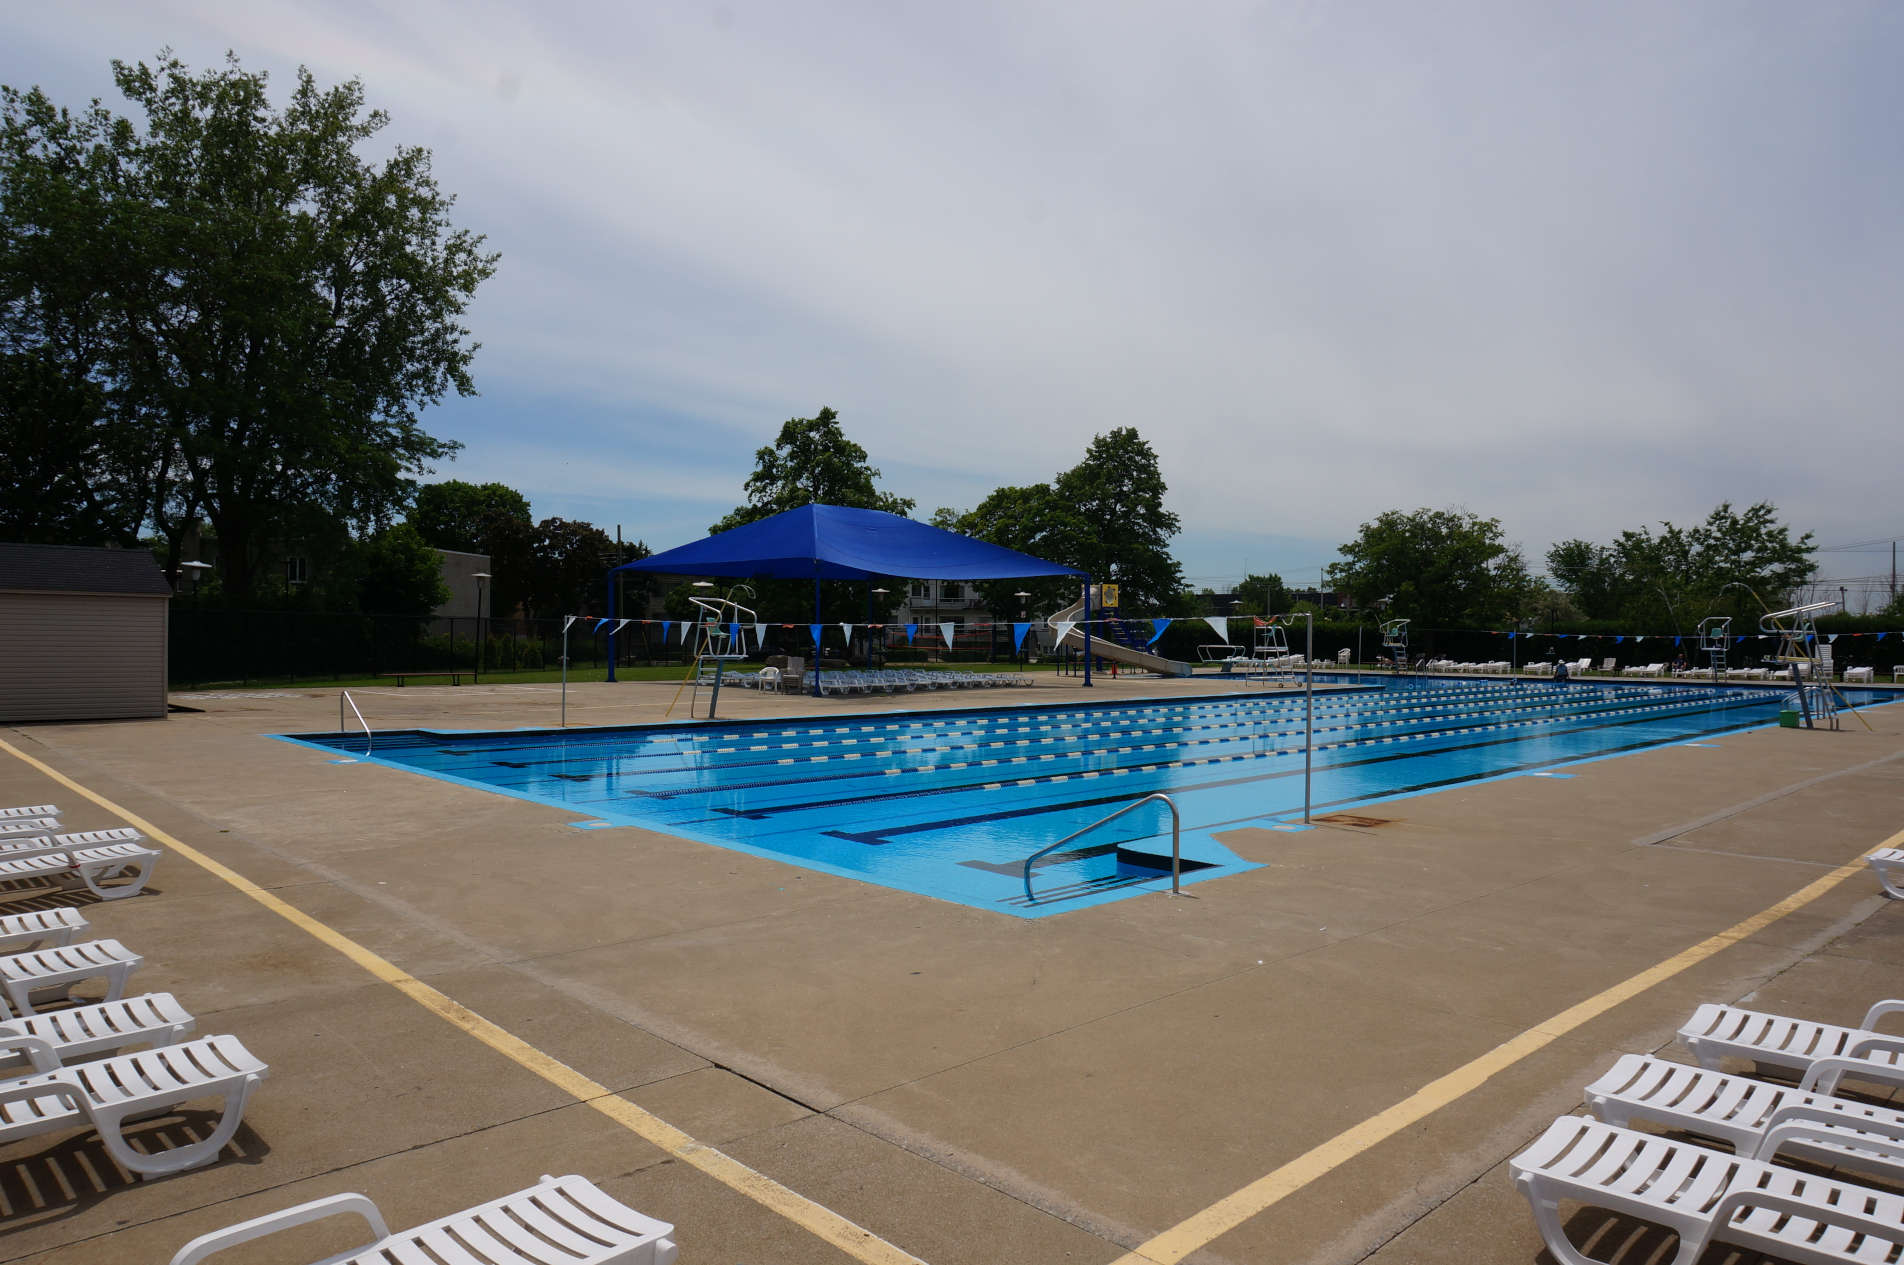 Parkhaven Outdoor Pool and Wading Pool